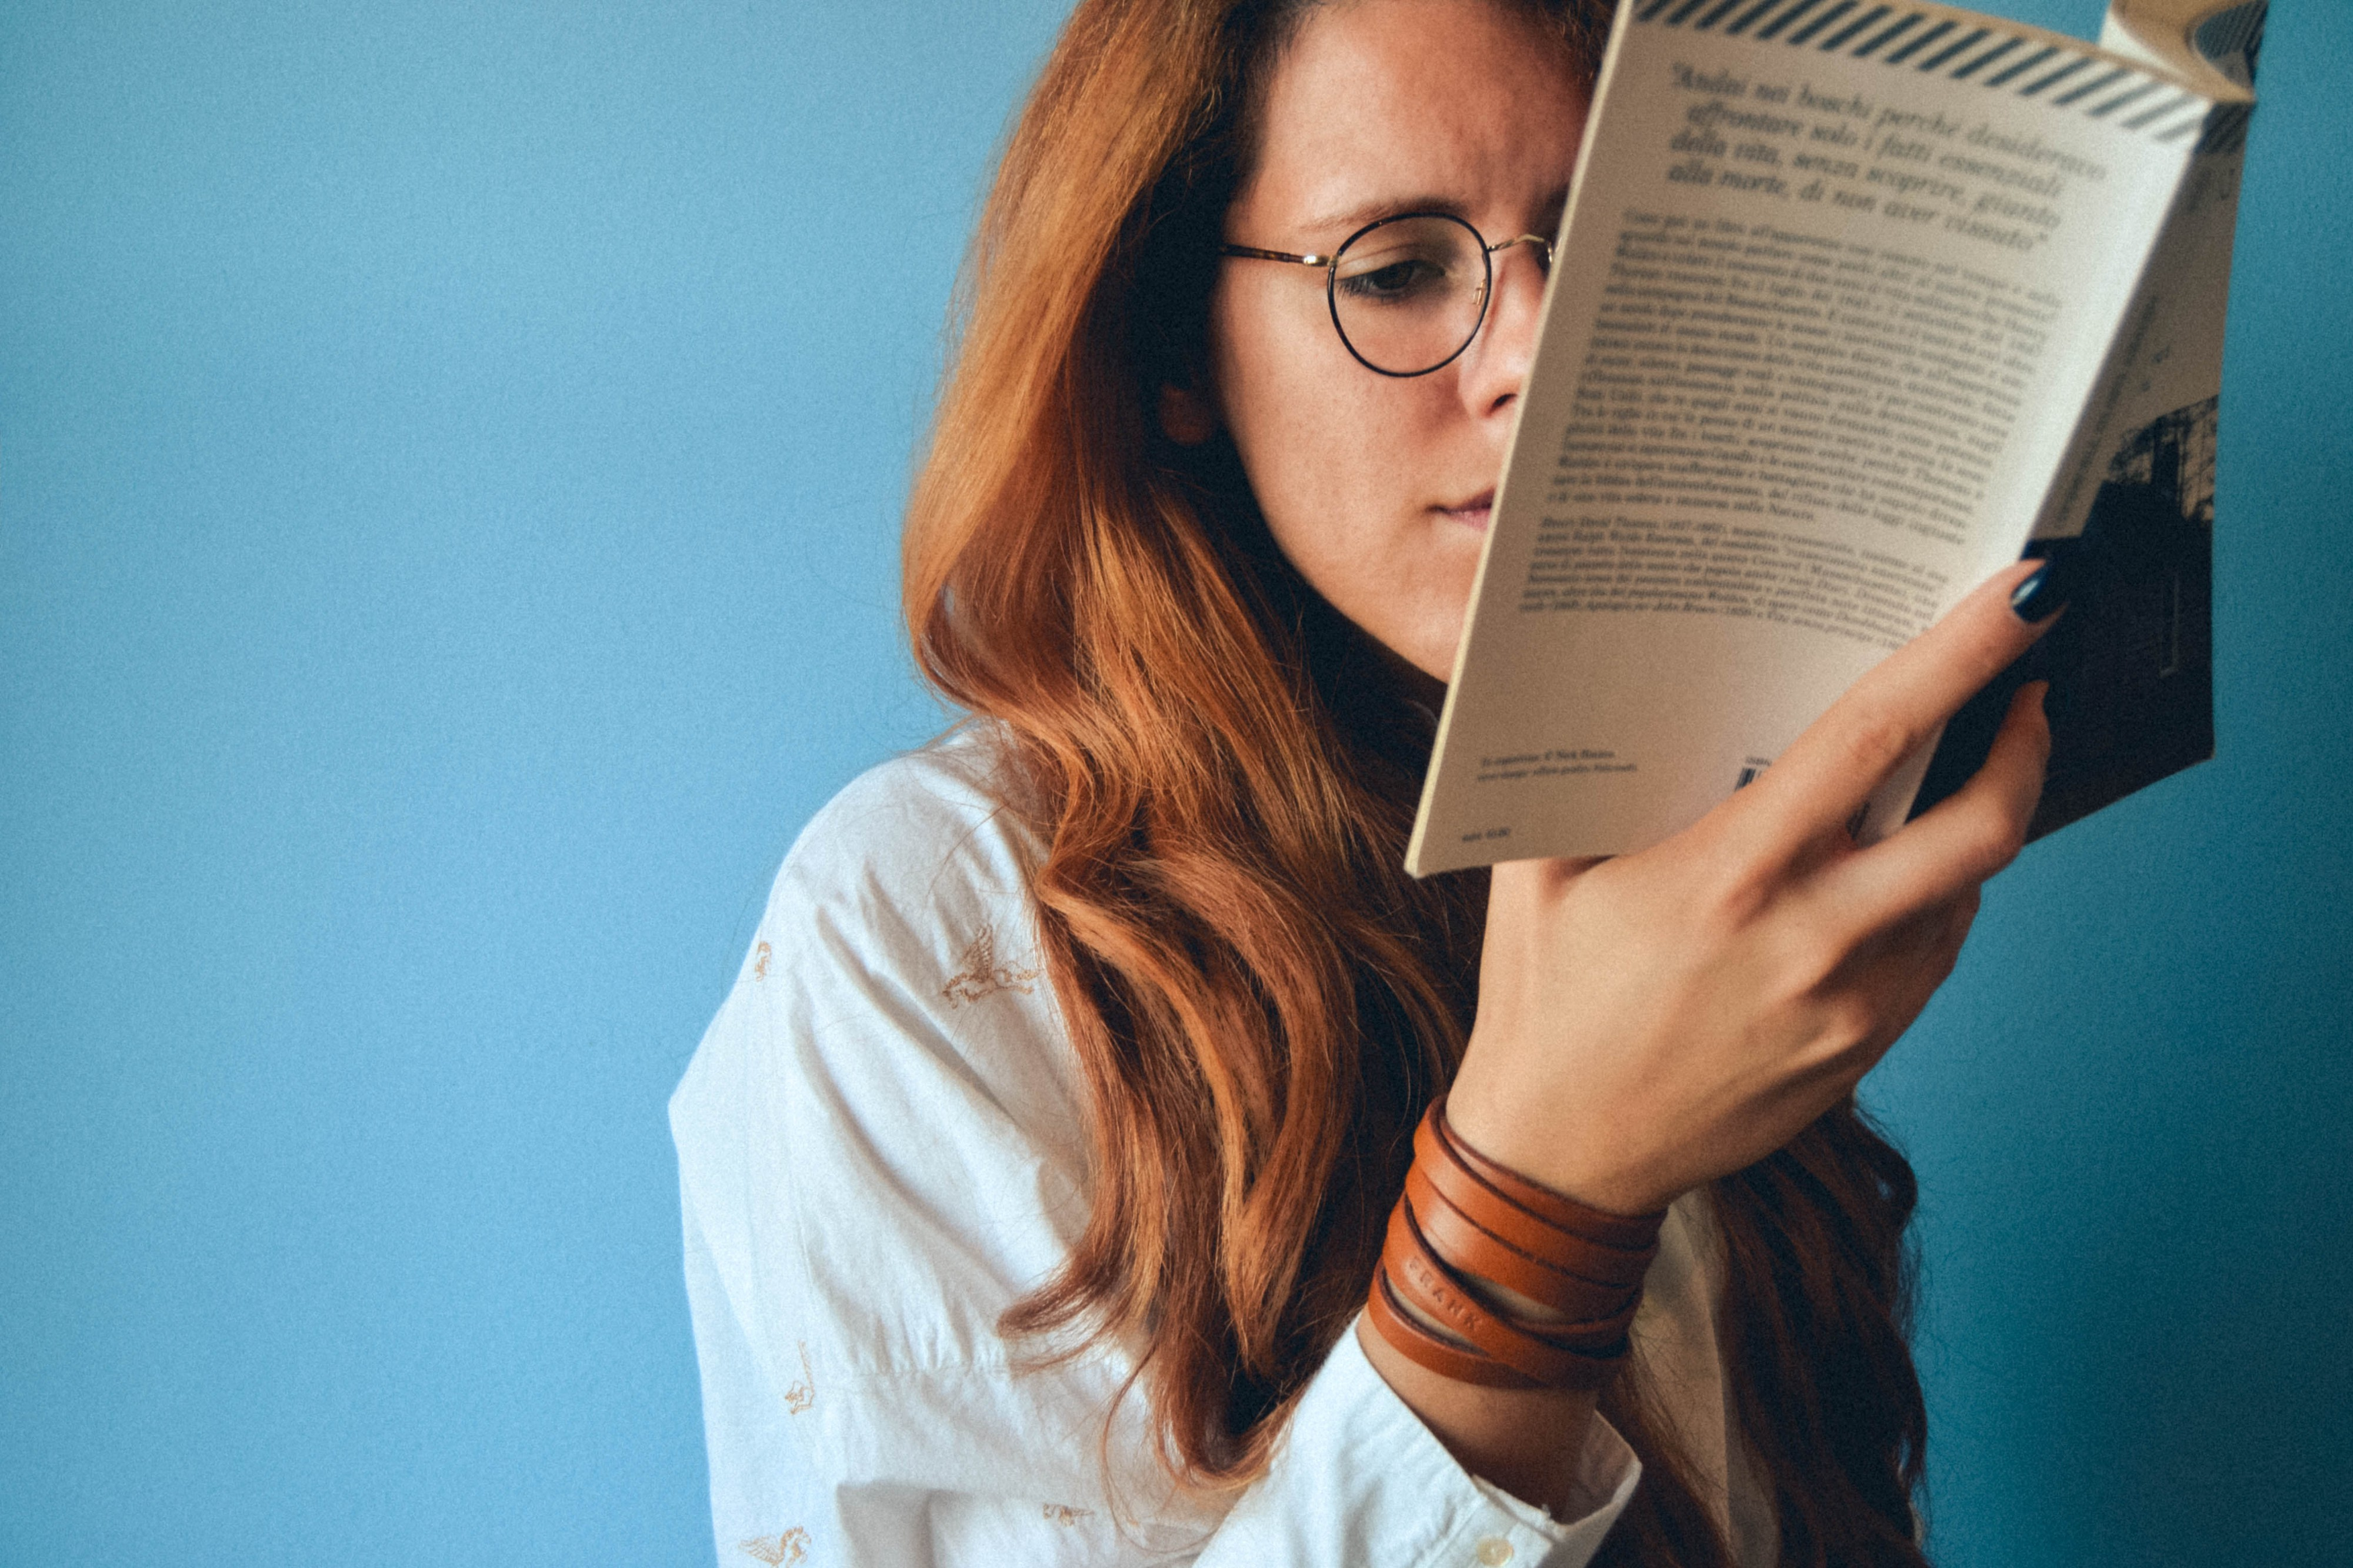 Red haired woman wearing glasses, reading a book.